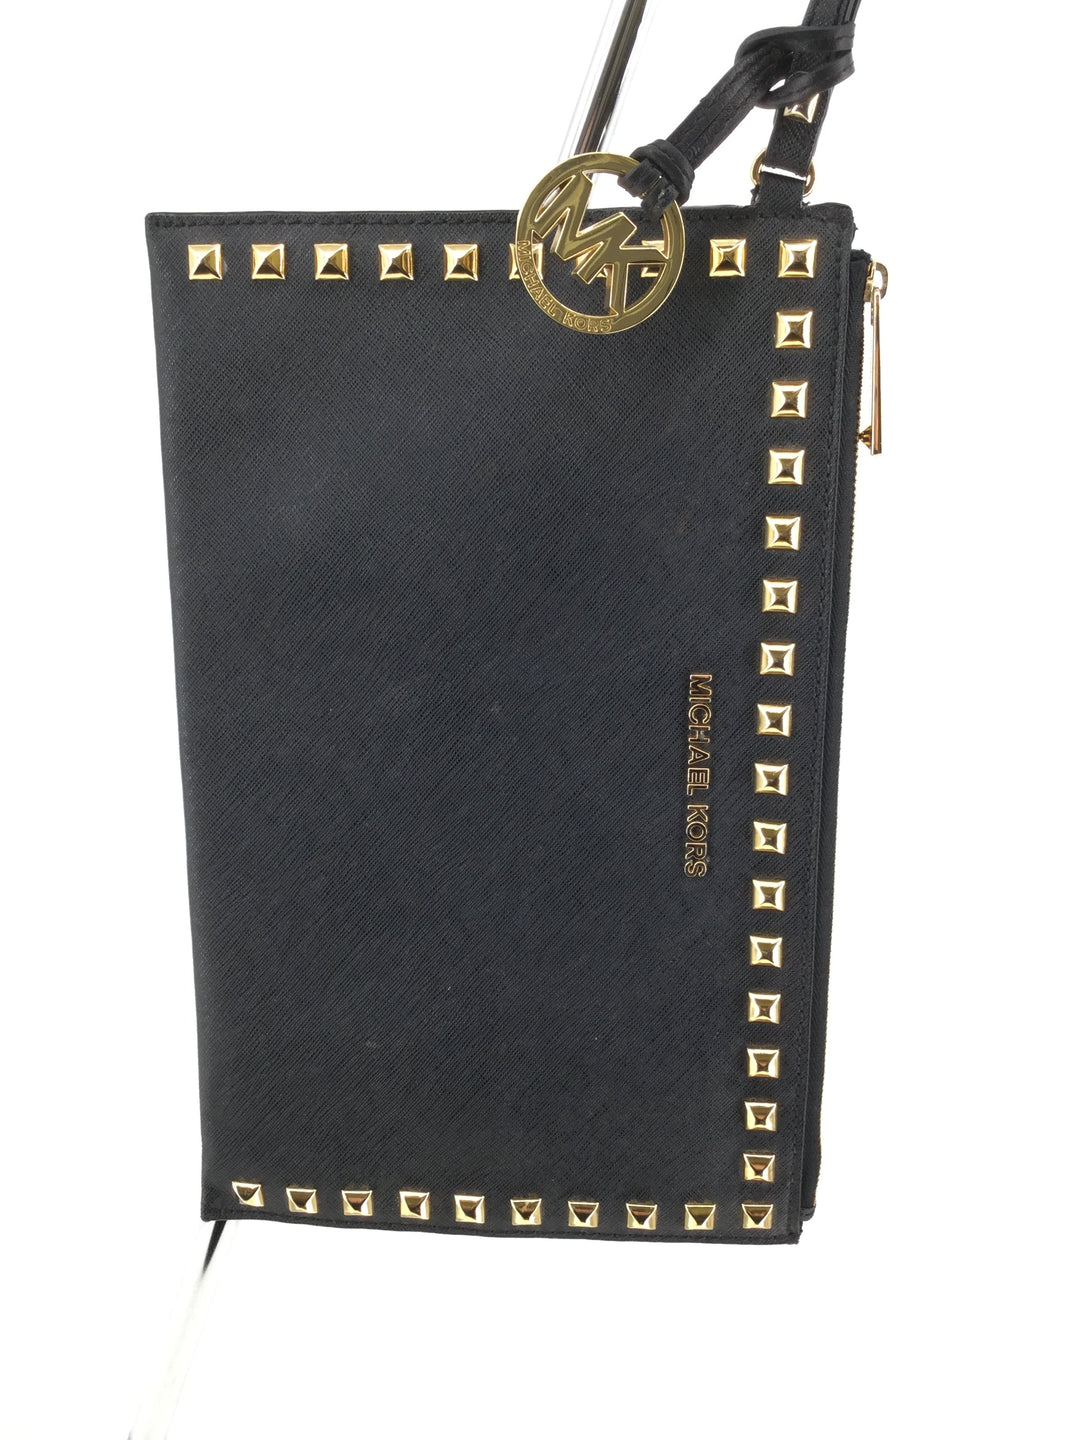 Black Leather Michael Kors Medium Size Clutch  - <P>MEDIUM SIZED BLACK LEATHER MICHAEL KORS CLUTCH WITH GOLD STUDS AROUND THE BOARDER. BLACK INTERIOR WITH ONE SMALL POCKET AND SIX CARD SLOTS. GENTLY USED CONDITION.</P>